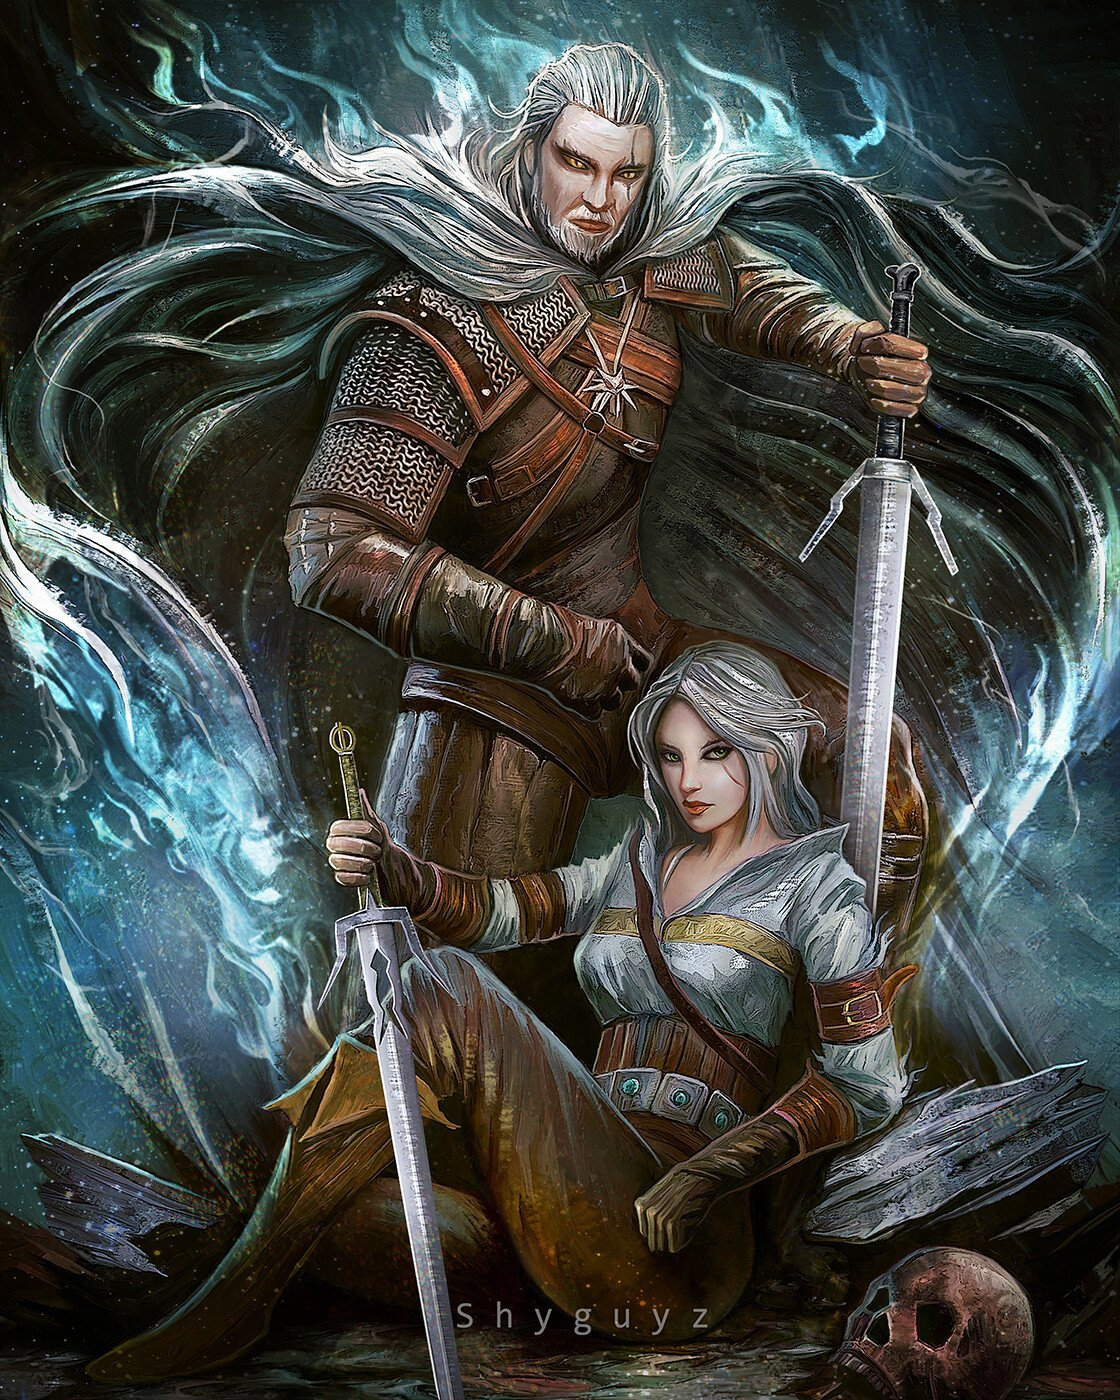 The Witcher 3 Fan Art Denotes A Beautifully Detailed Geralt And Ciri